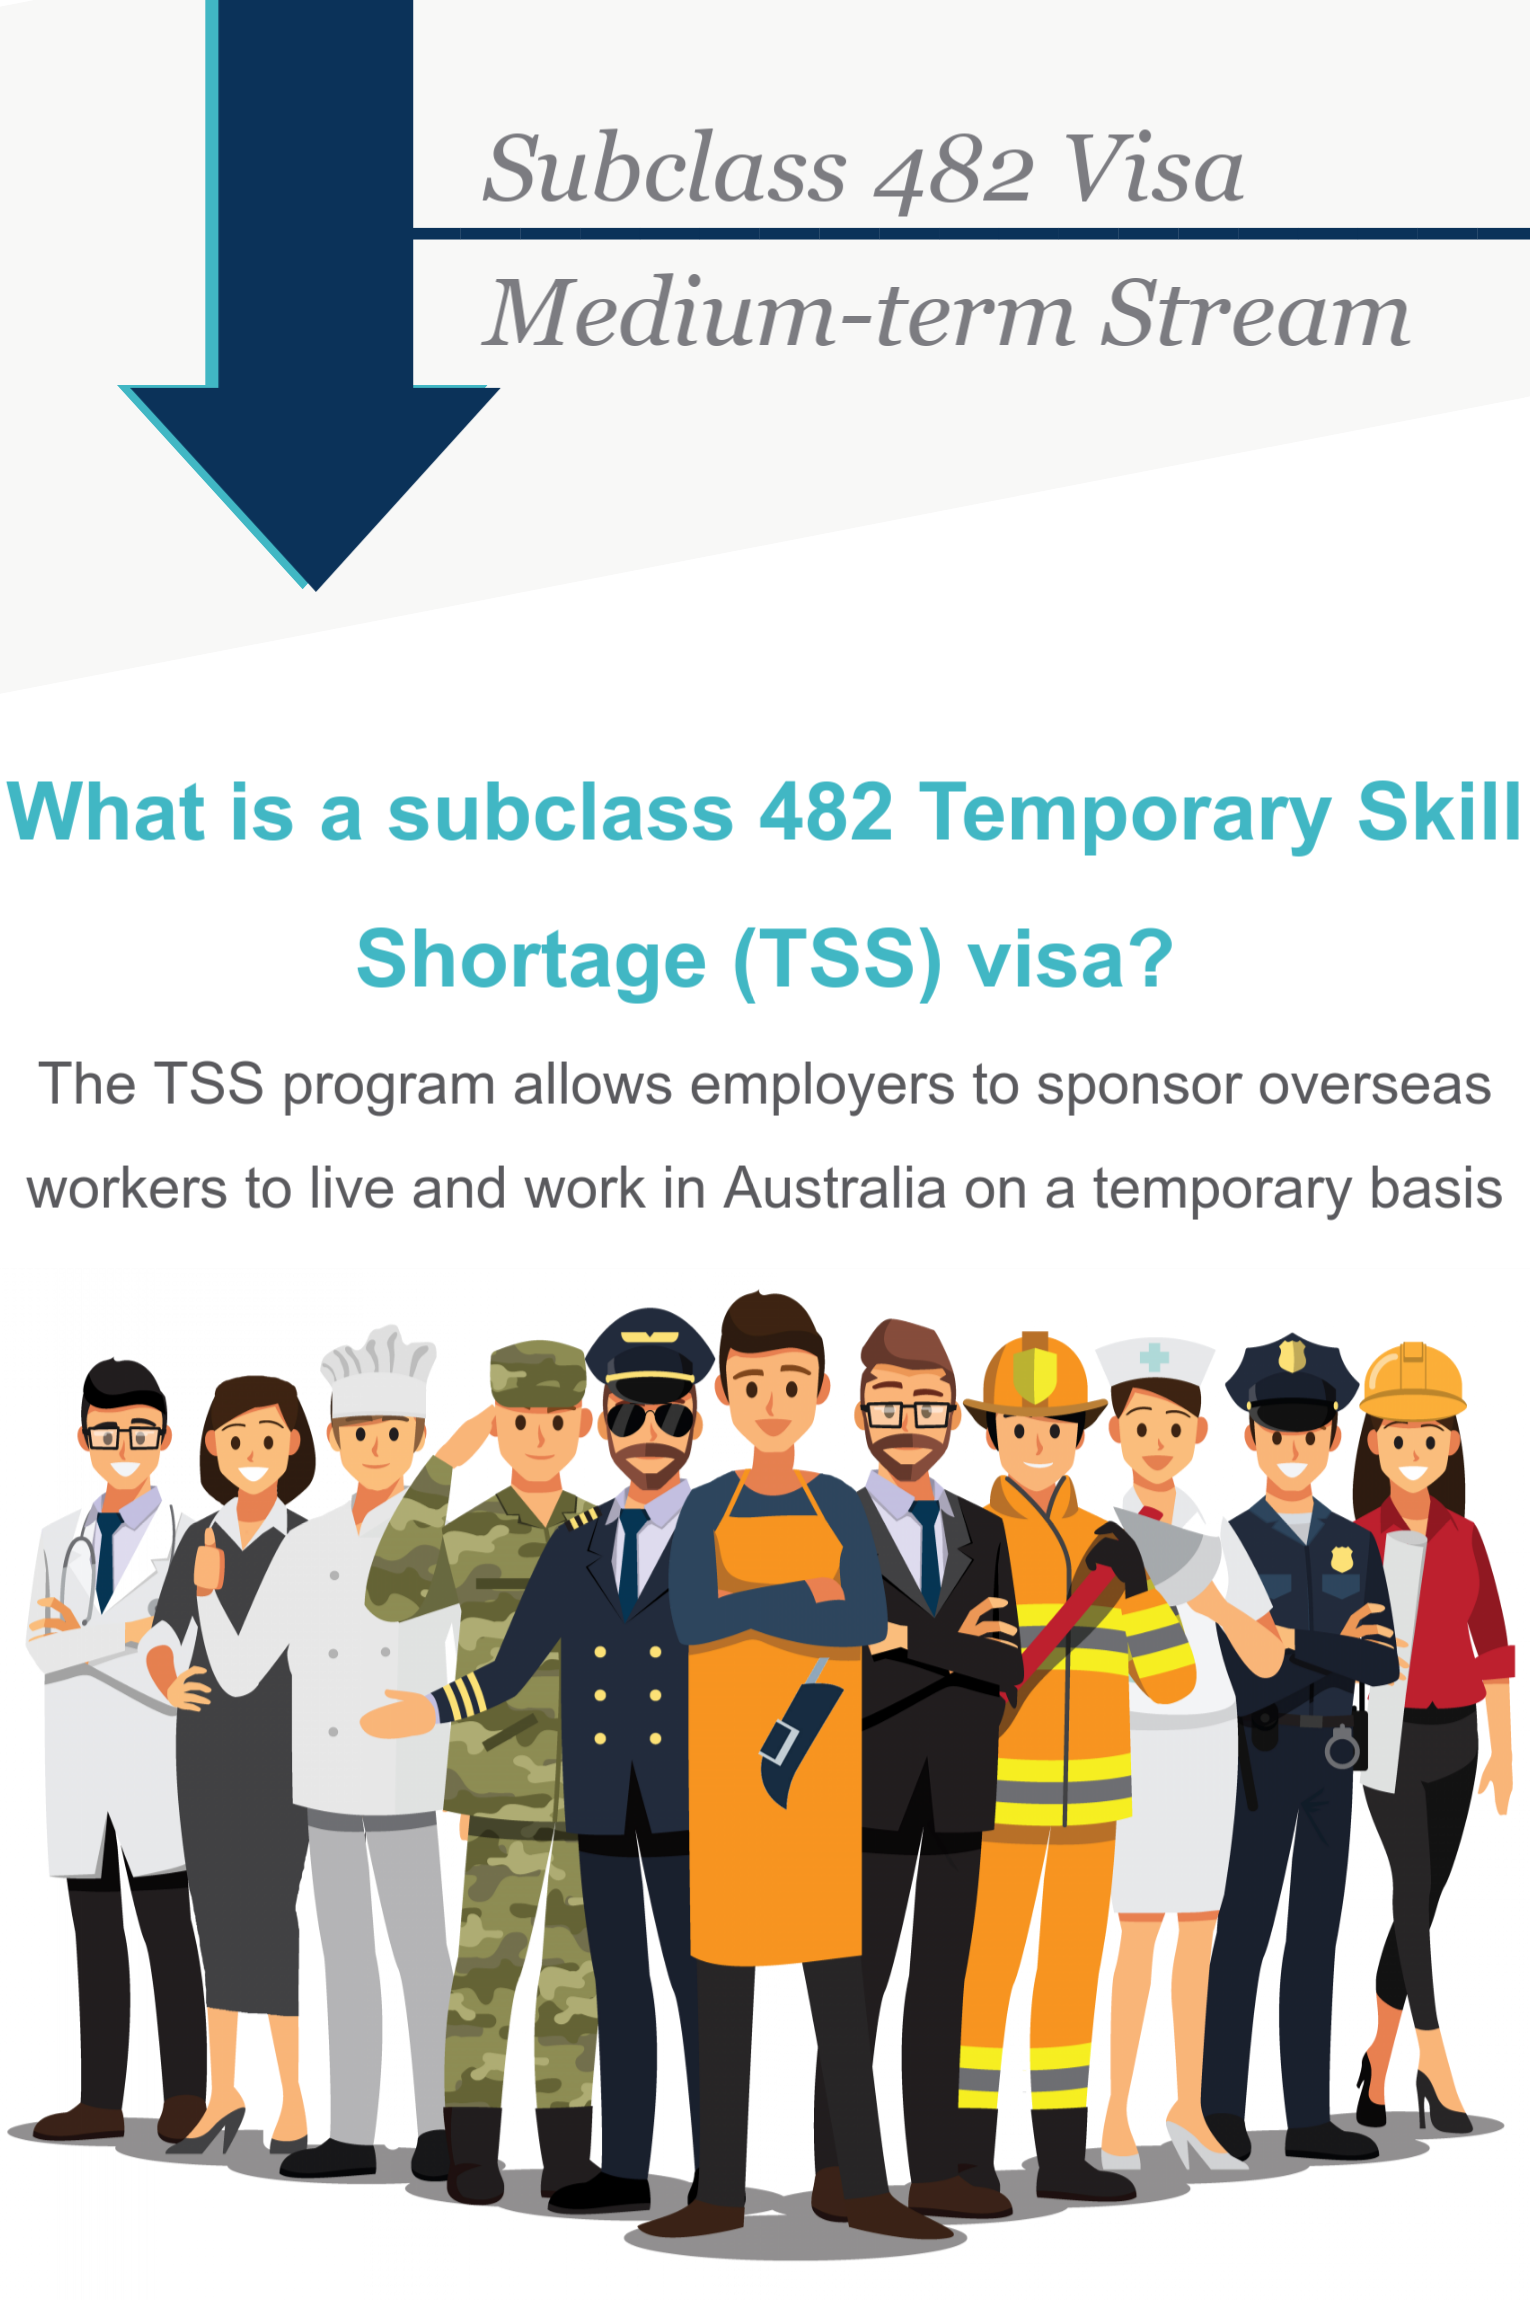 Subclass 482 Temporary Skill Shortage (TSS) visa under